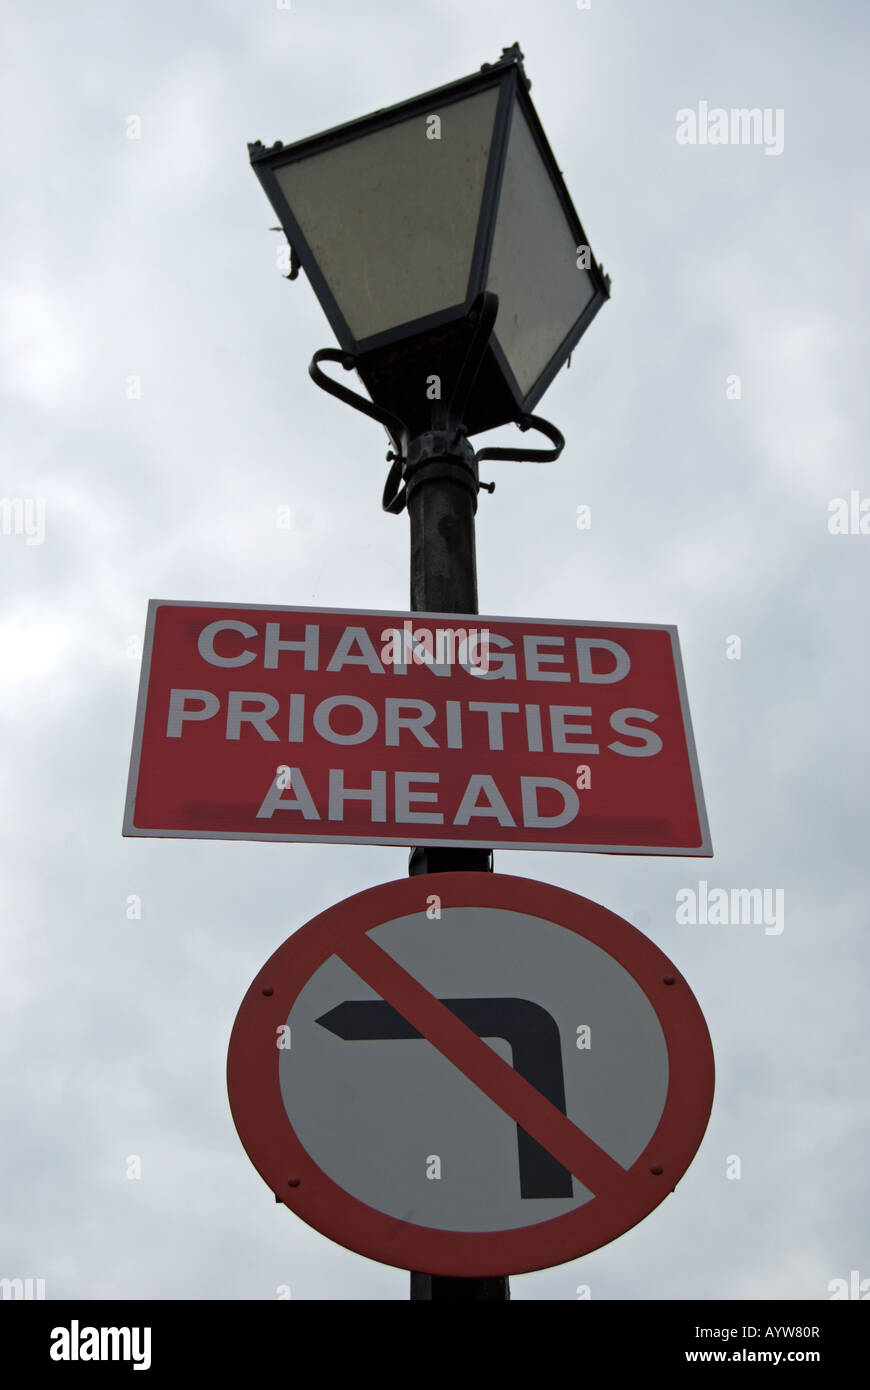 british road sign fixed to victorian style lamppost indicating no left turn and stating changed priorities ahead - Stock Image